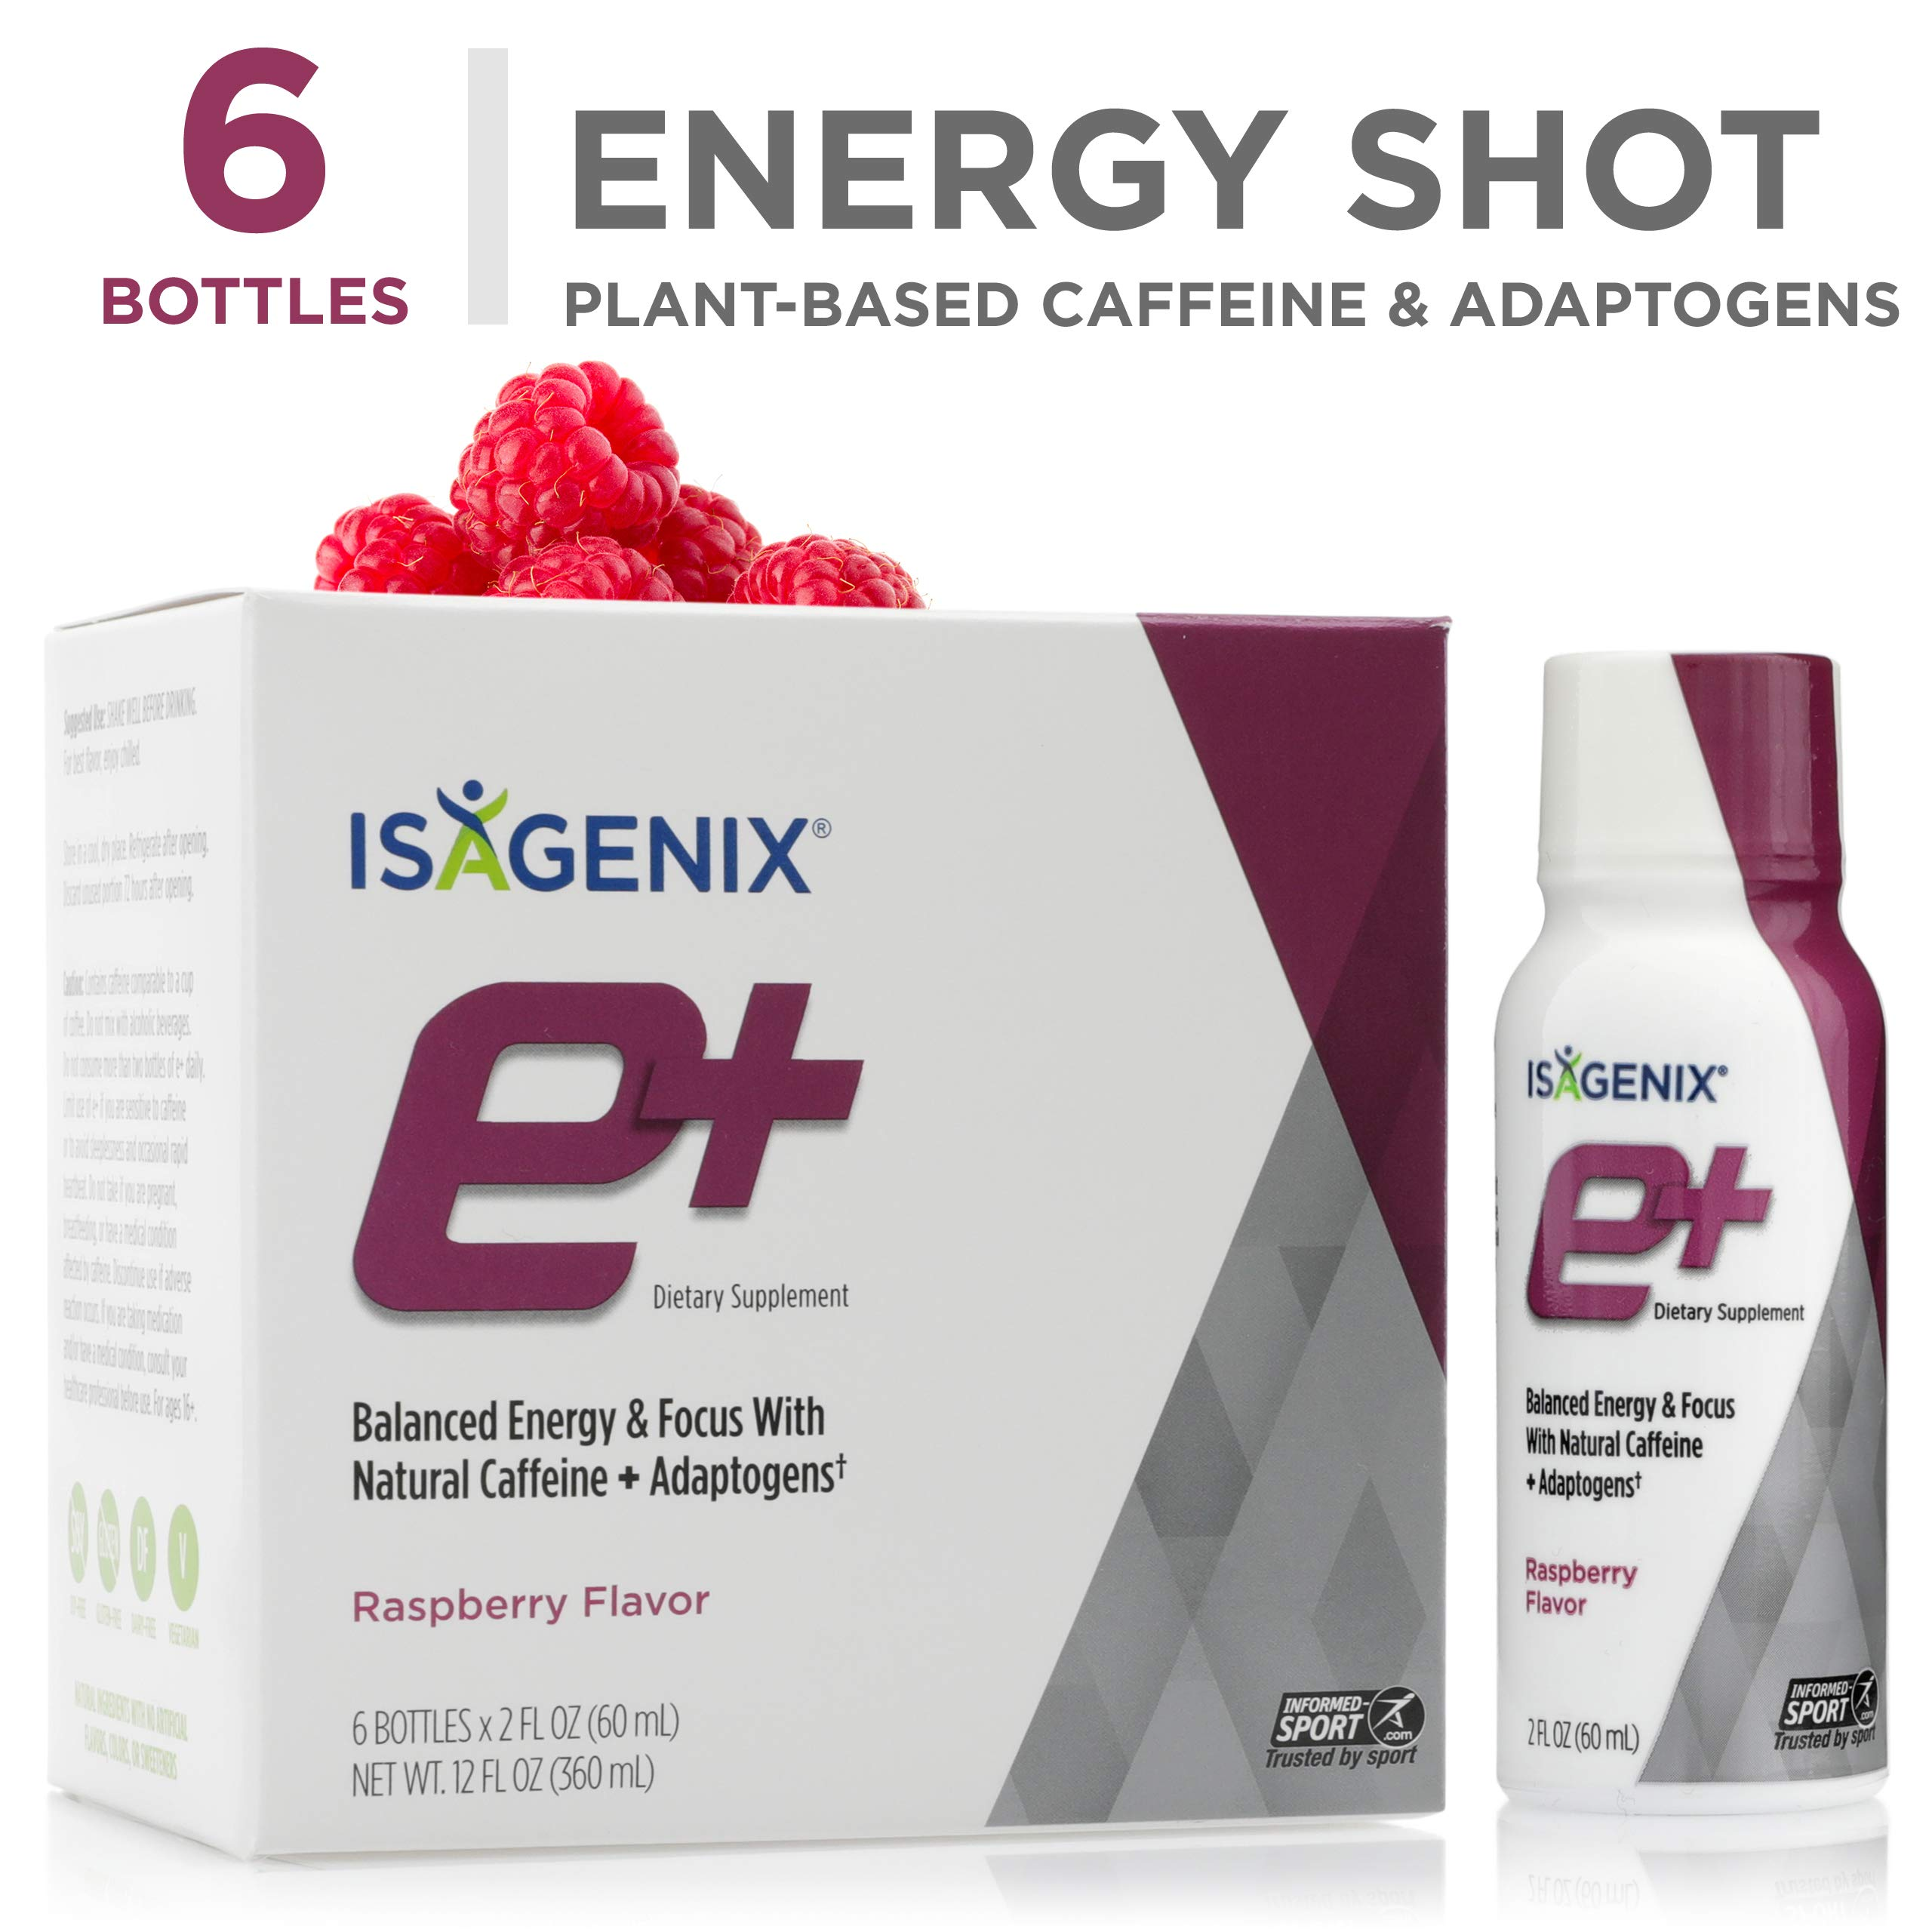 e+TM - Raspberry - 2-Ounce Bottle, 6 Count by Isagenix